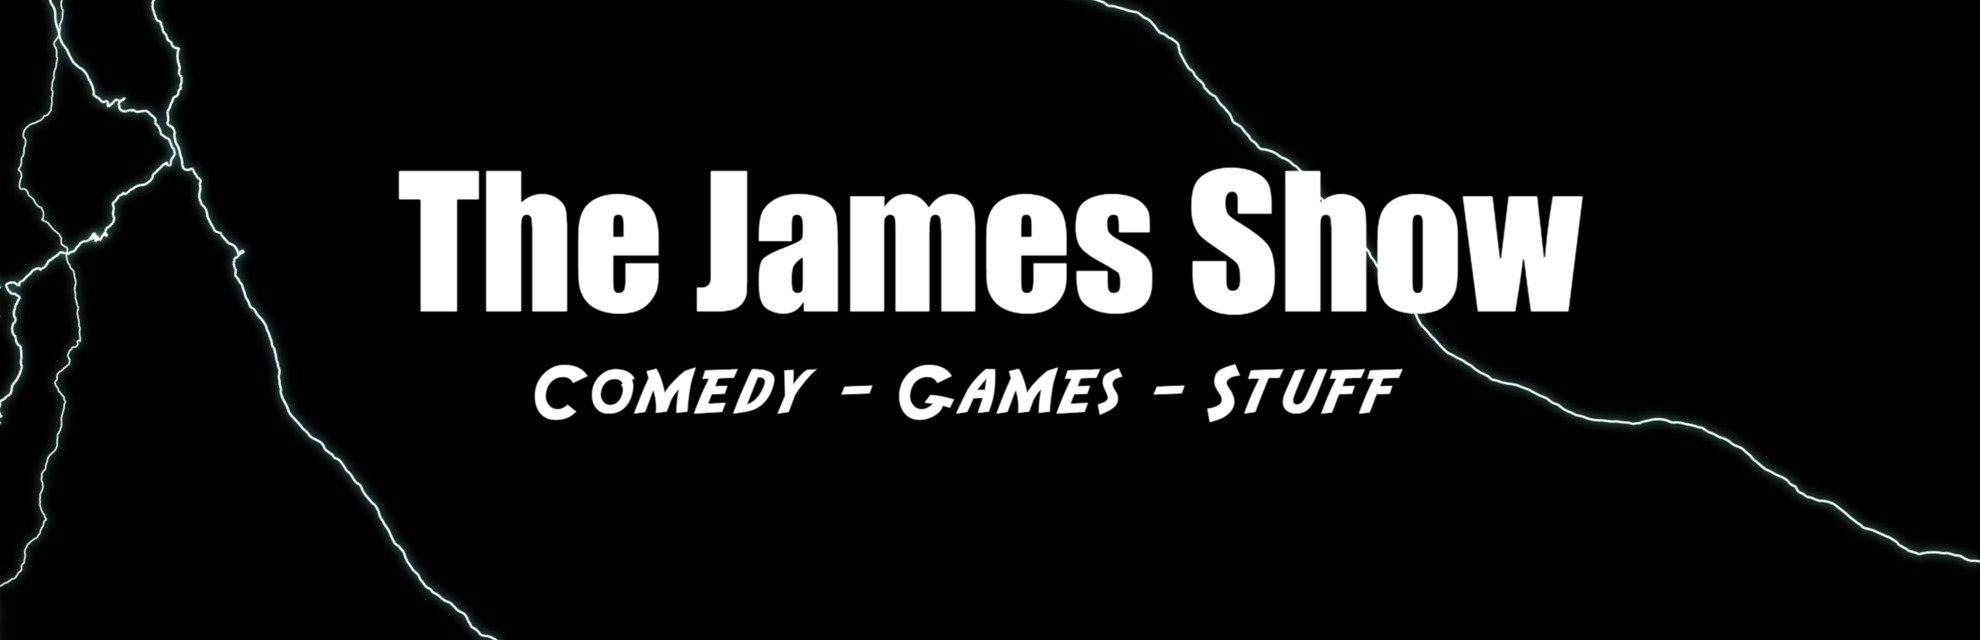 thejamesshow00 blog header photo